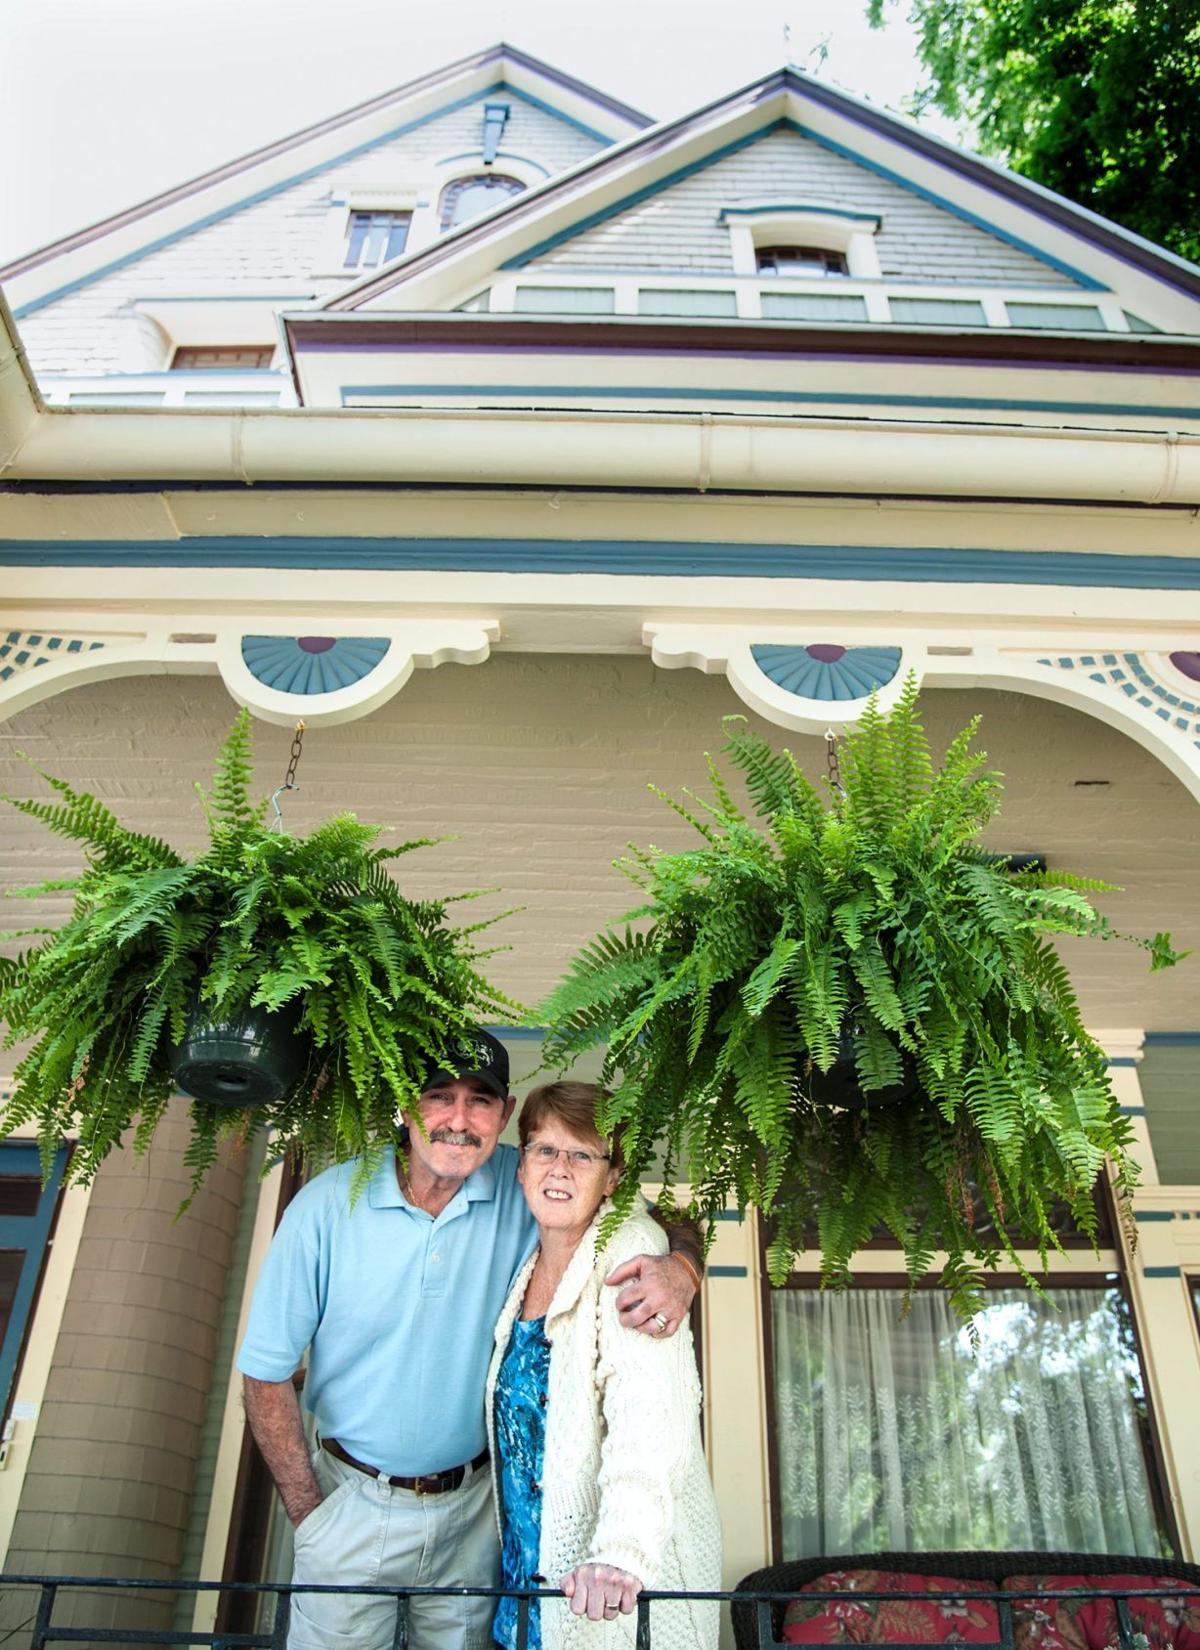 Slice of life: A dream house and dream collection in Urbana B&B